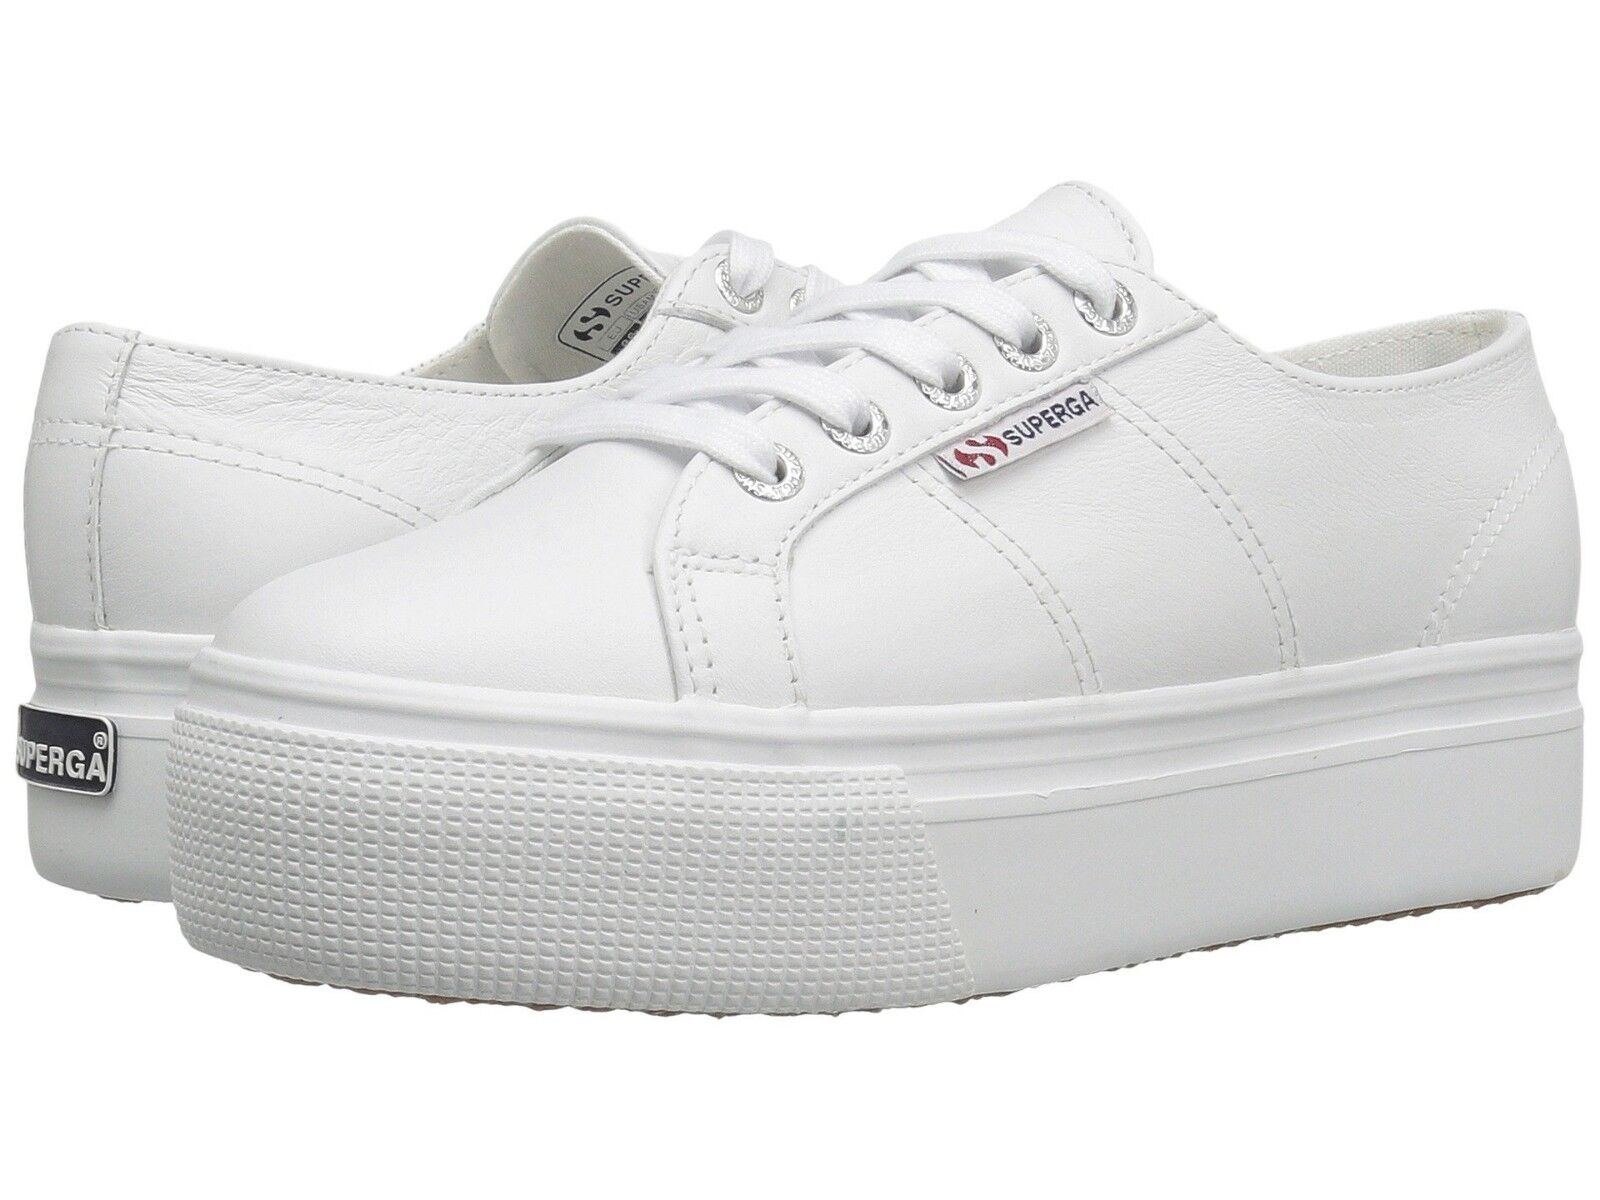 SUPERGA ACOT LINEA WOMENS MENS WHITE LEATHER PLATFORM TENNIS SHOES W 10 M 8.5 BN